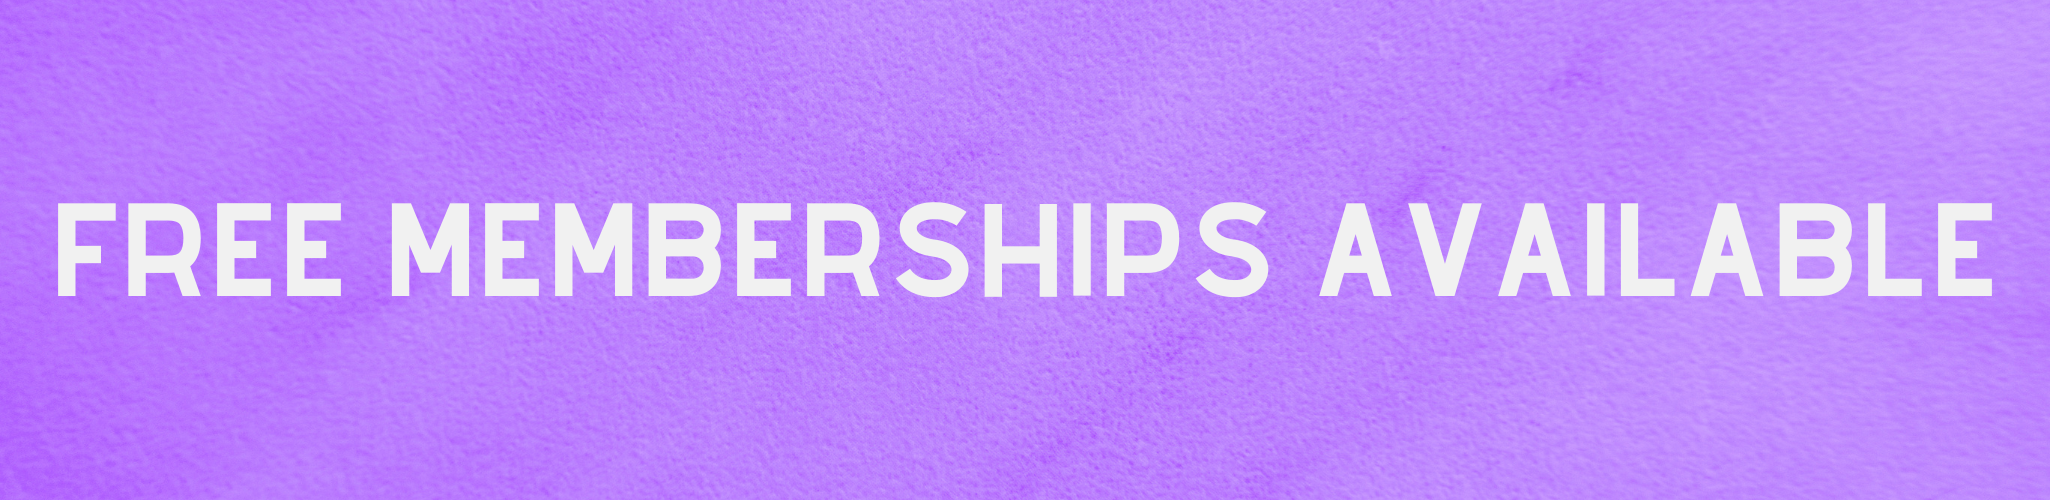 A purple textured background with white text in the centre that reads Free Memberships Available